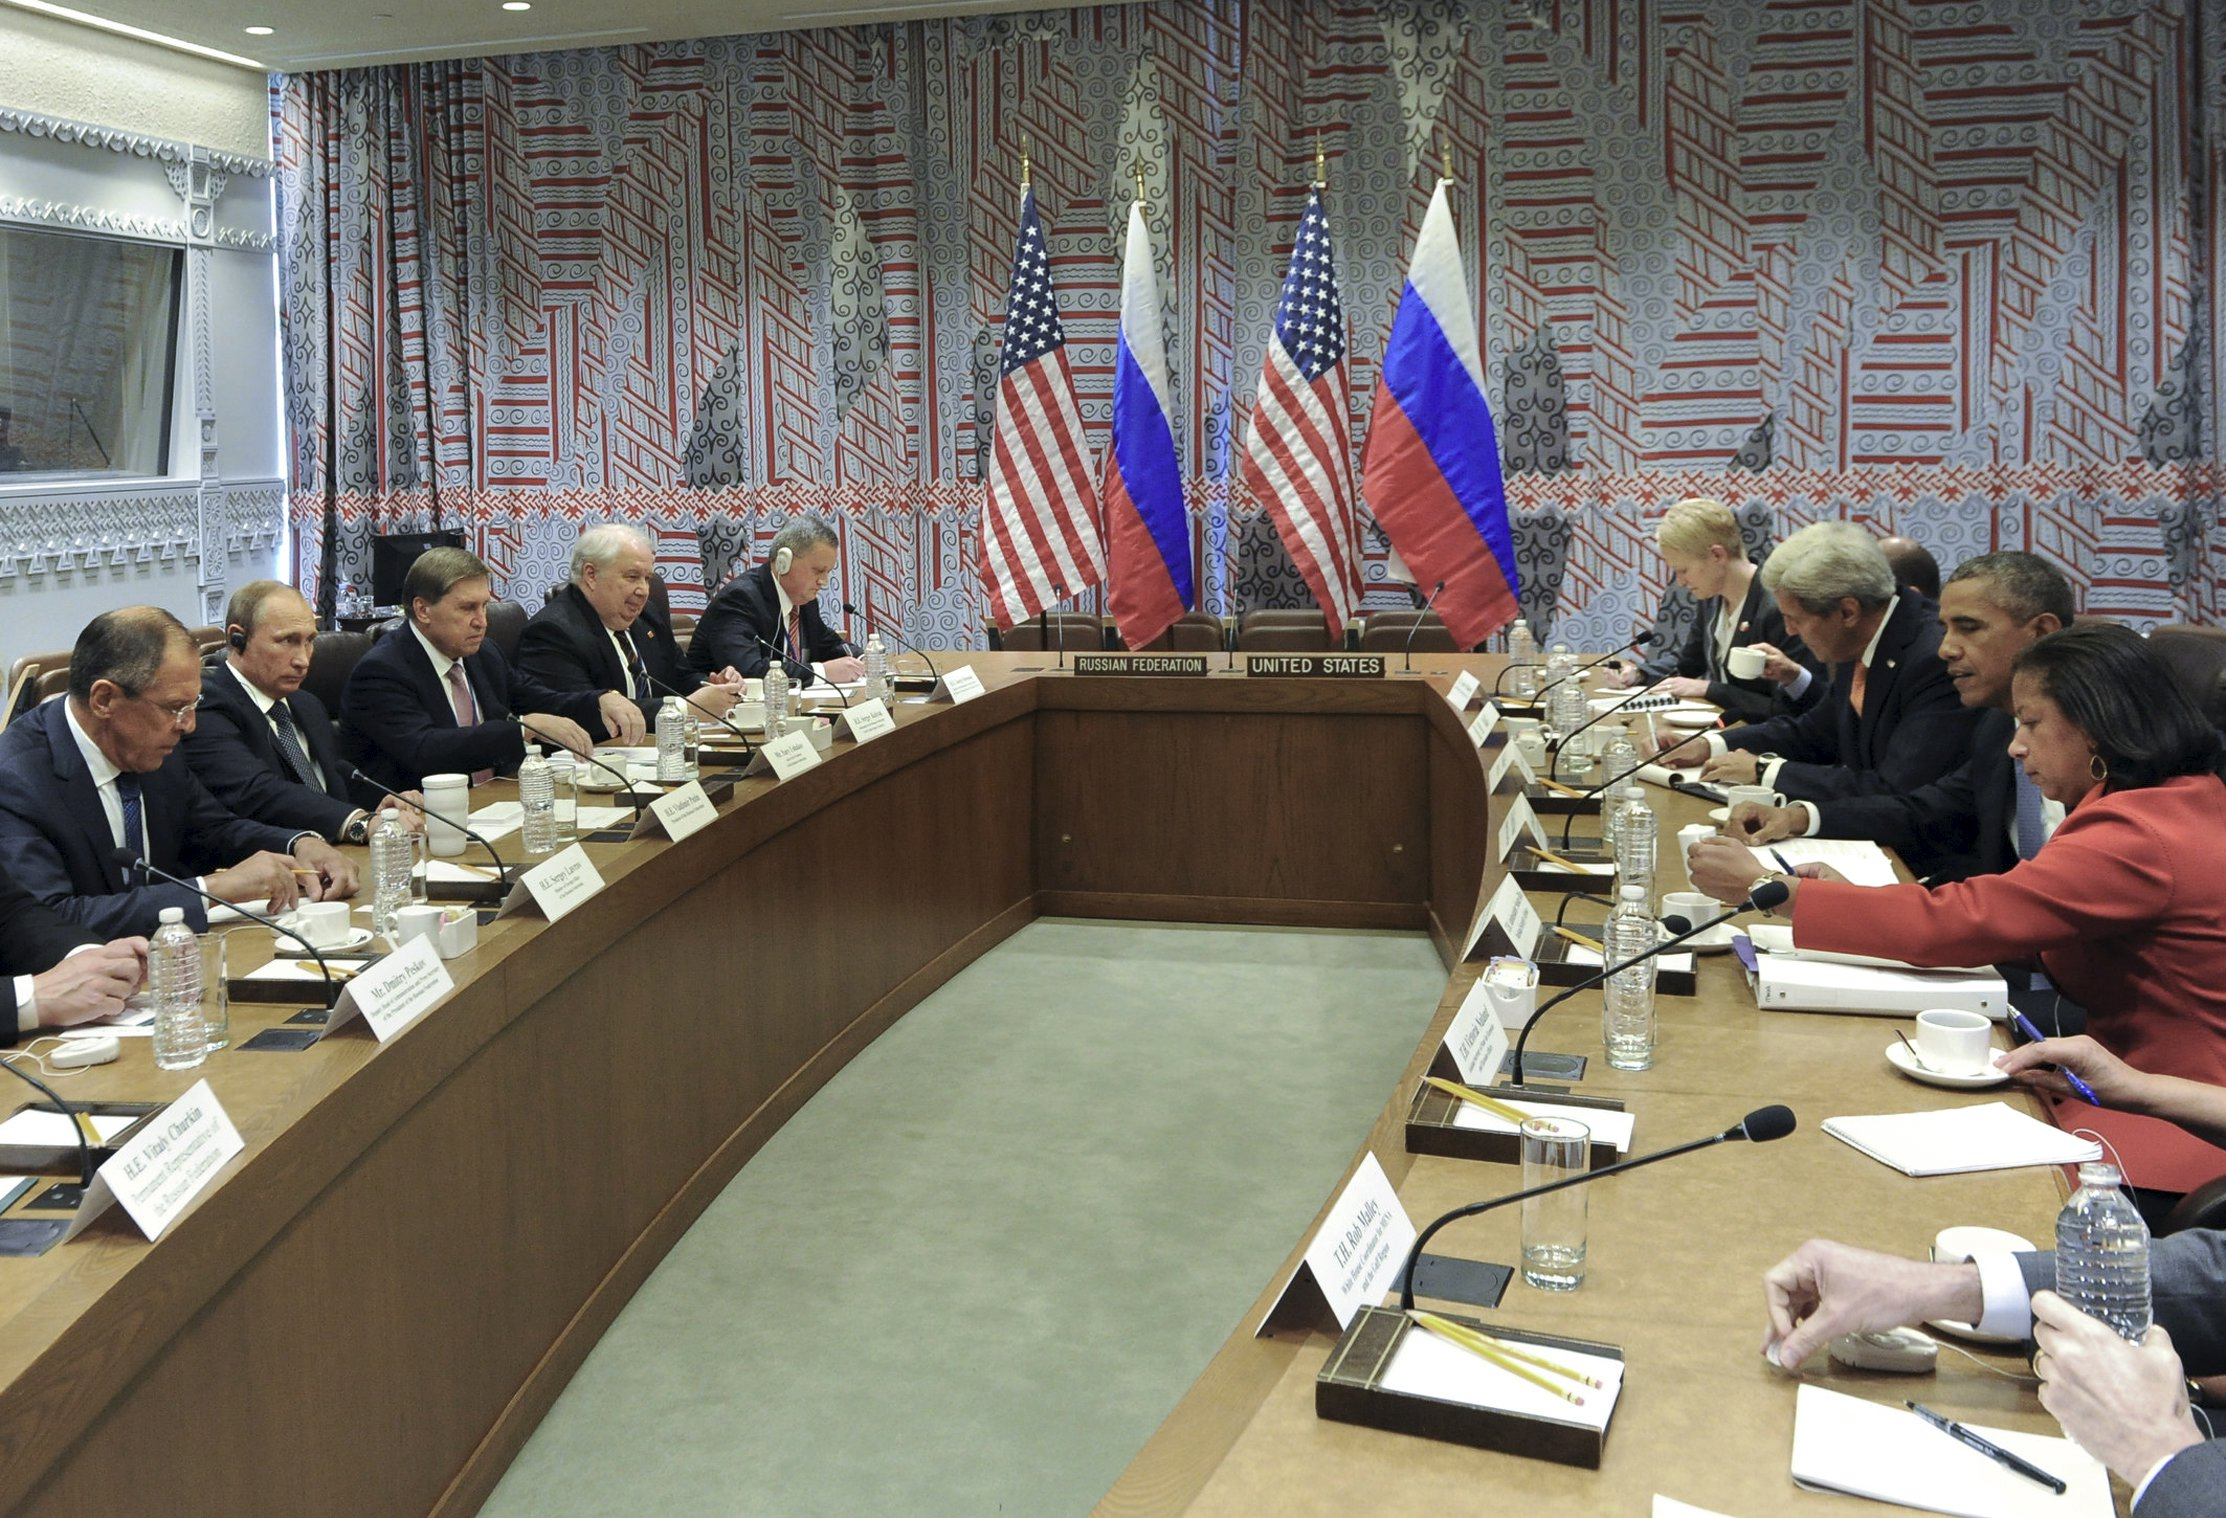 Russia and U.S. delegations, led by Presidents Vladimir Putin and Barack Obama, attend a meeting on the sidelines of the United Nations General Assembly in New York, September 28, 2015. U.S. President Obama and Russian President Putin agreed on Monday to direct their militaries to hold talks to avoid conflict over potential operations in Syria, a U.S. official said. Picture taken September 28, 2015. REUTERS/Mikhail Klimentyev/RIA Novosti/Kremlin ATTENTION EDITORS - THIS IMAGE HAS BEEN SUPPLIED BY A THIRD PARTY. IT IS DISTRIBUTED, EXACTLY AS RECEIVED BY REUTERS, AS A SERVICE TO CLIENTS.